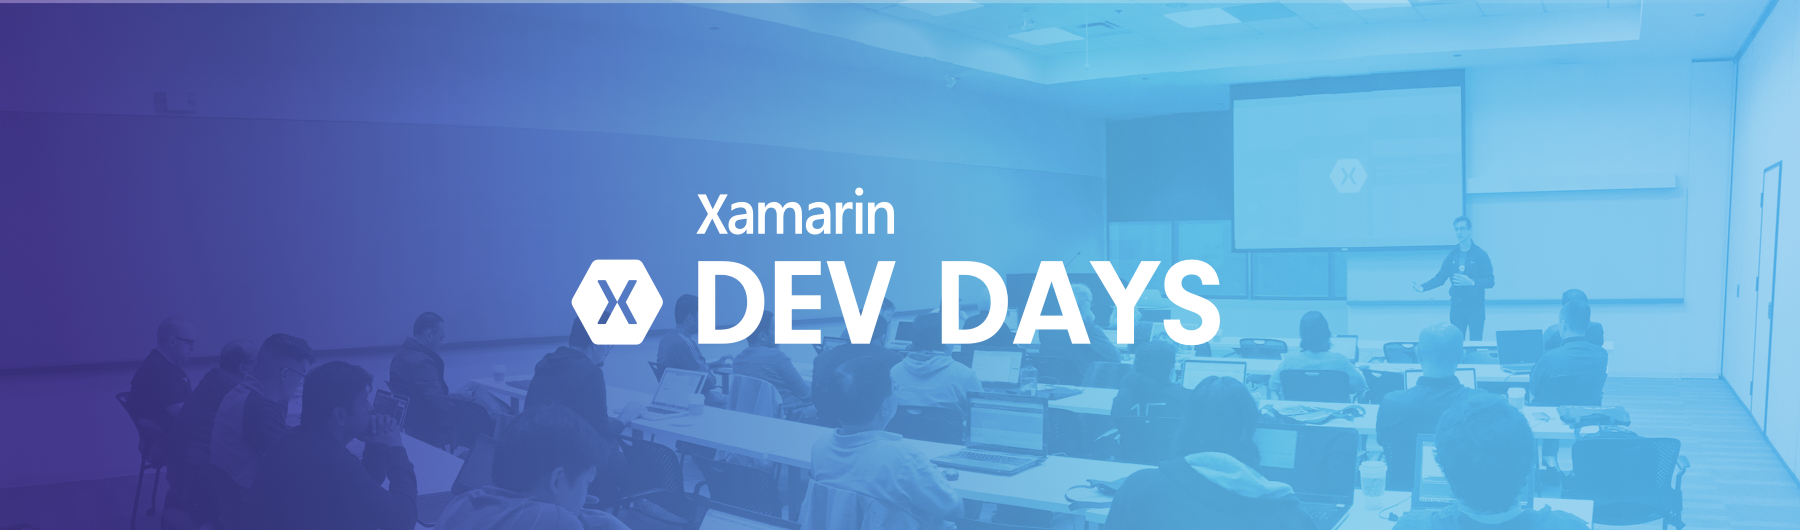 Xamarin Dev Days - St. Louis